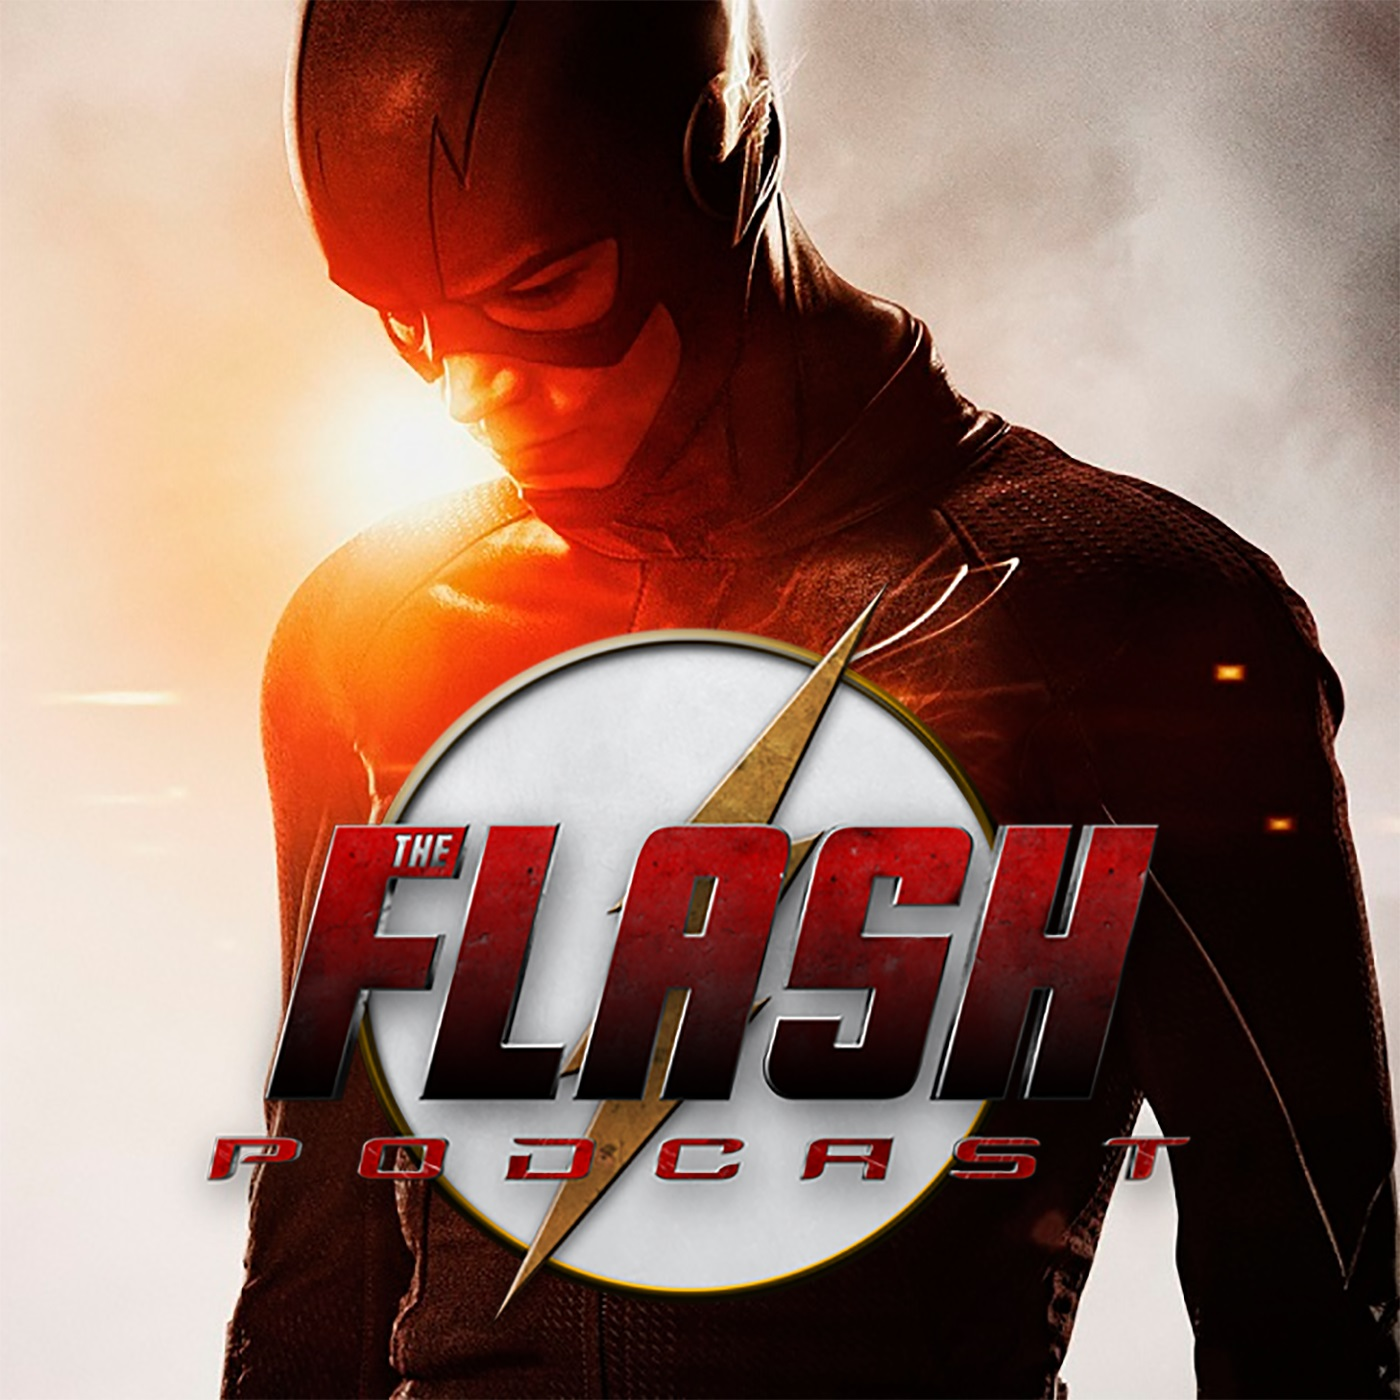 The Flash Podcast Season 2.5 - Episode 8: Caitlin Snow/Killer Frost In Season 2